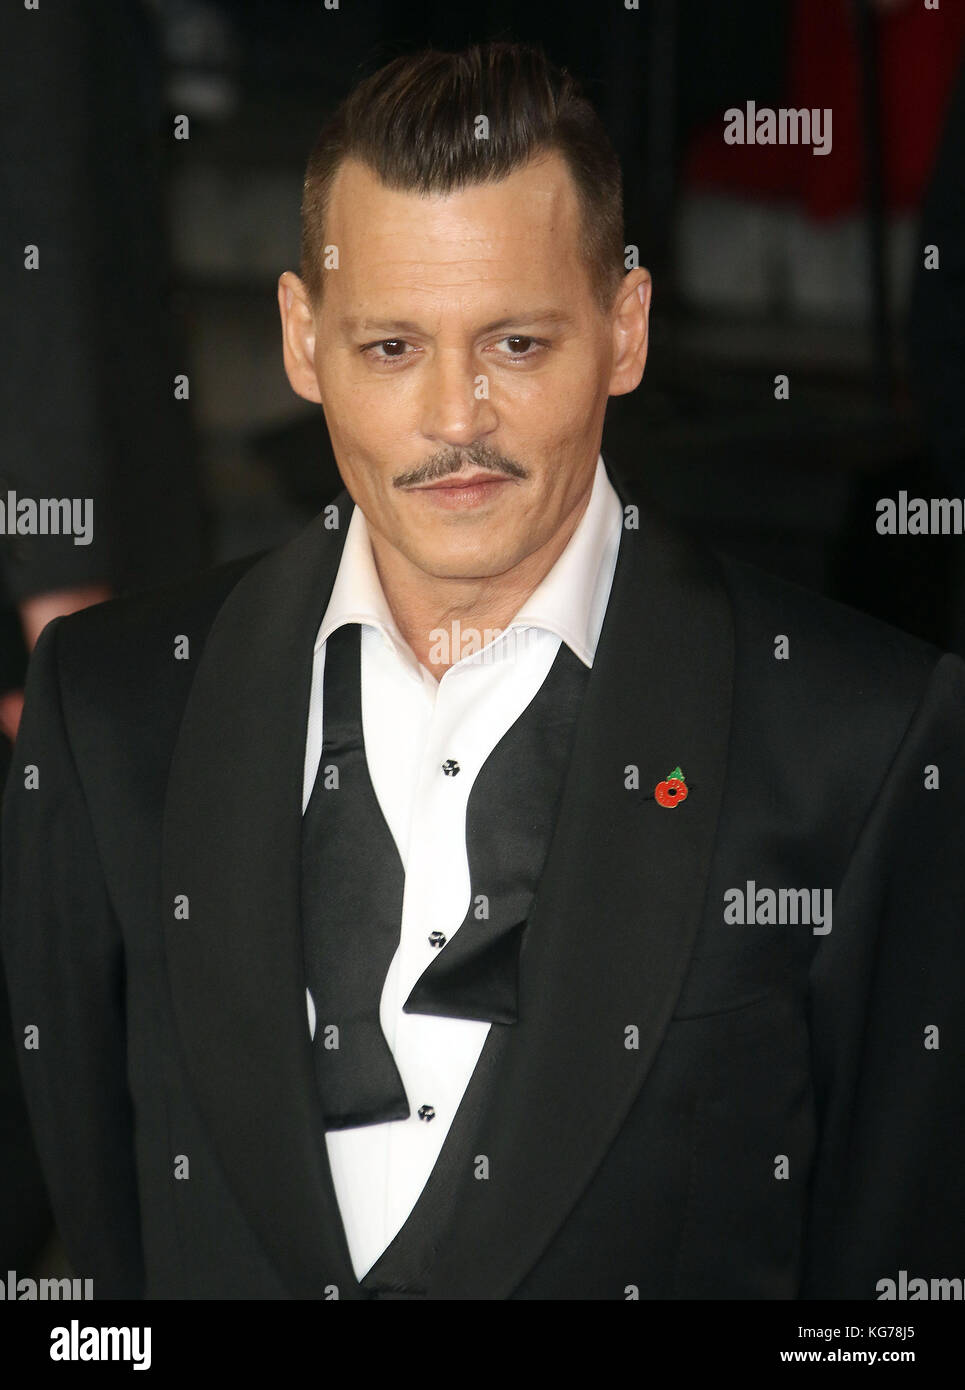 London, UK. 2nd November, 2017. Johnny Depp attends the Murder on the Orient Express film premiere - Stock Image